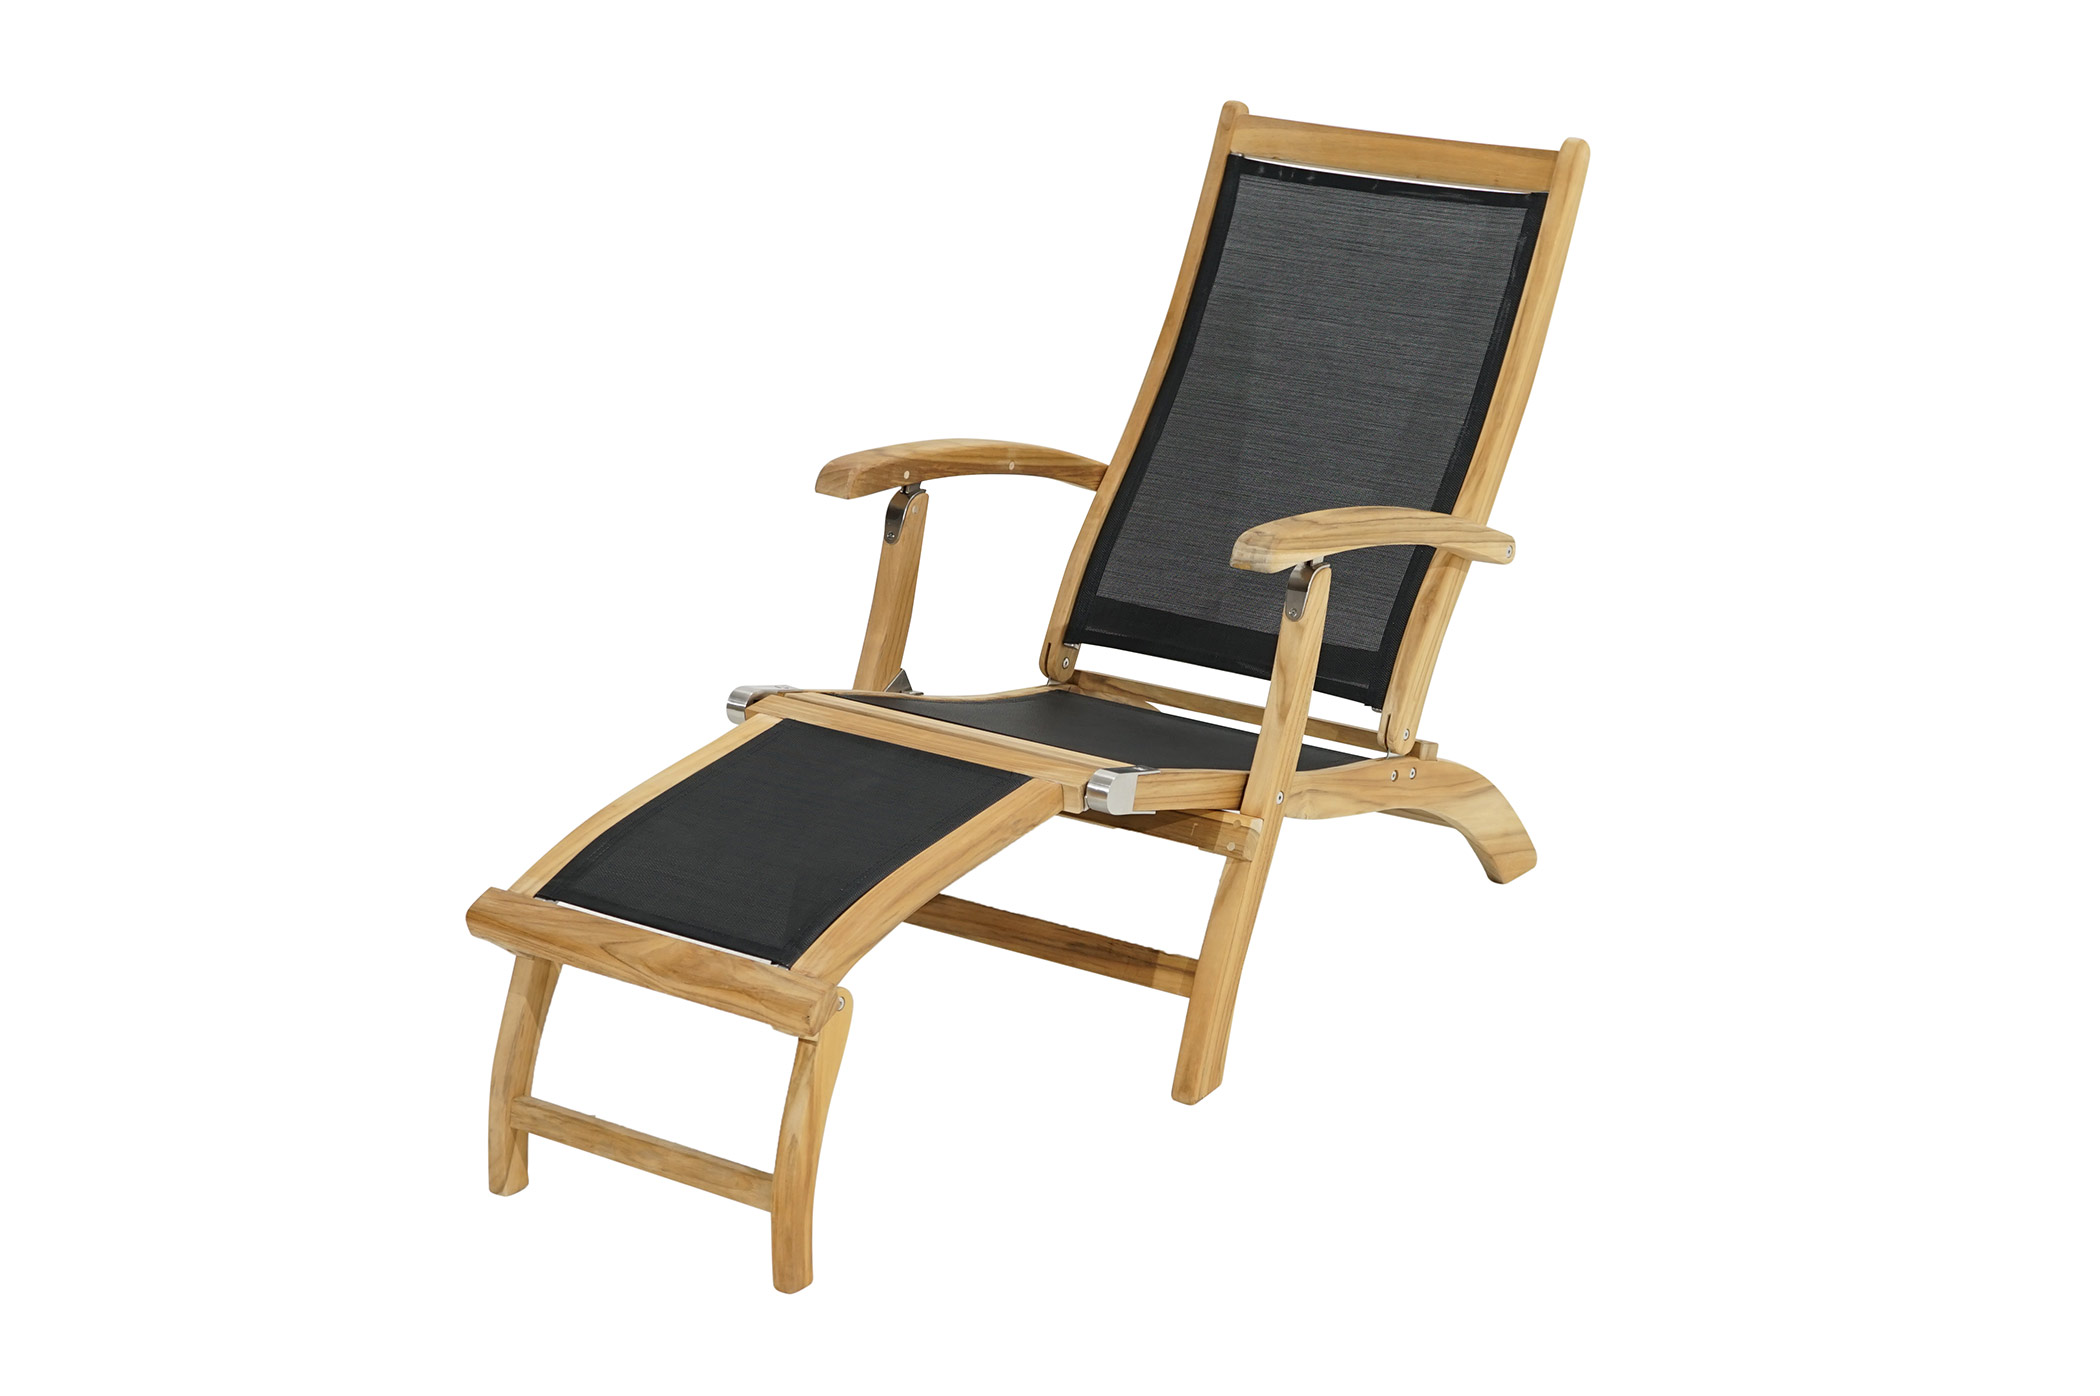 deckchair fairchild teak textilene deckchairs gartenliegen deckchairs gartenm bel. Black Bedroom Furniture Sets. Home Design Ideas